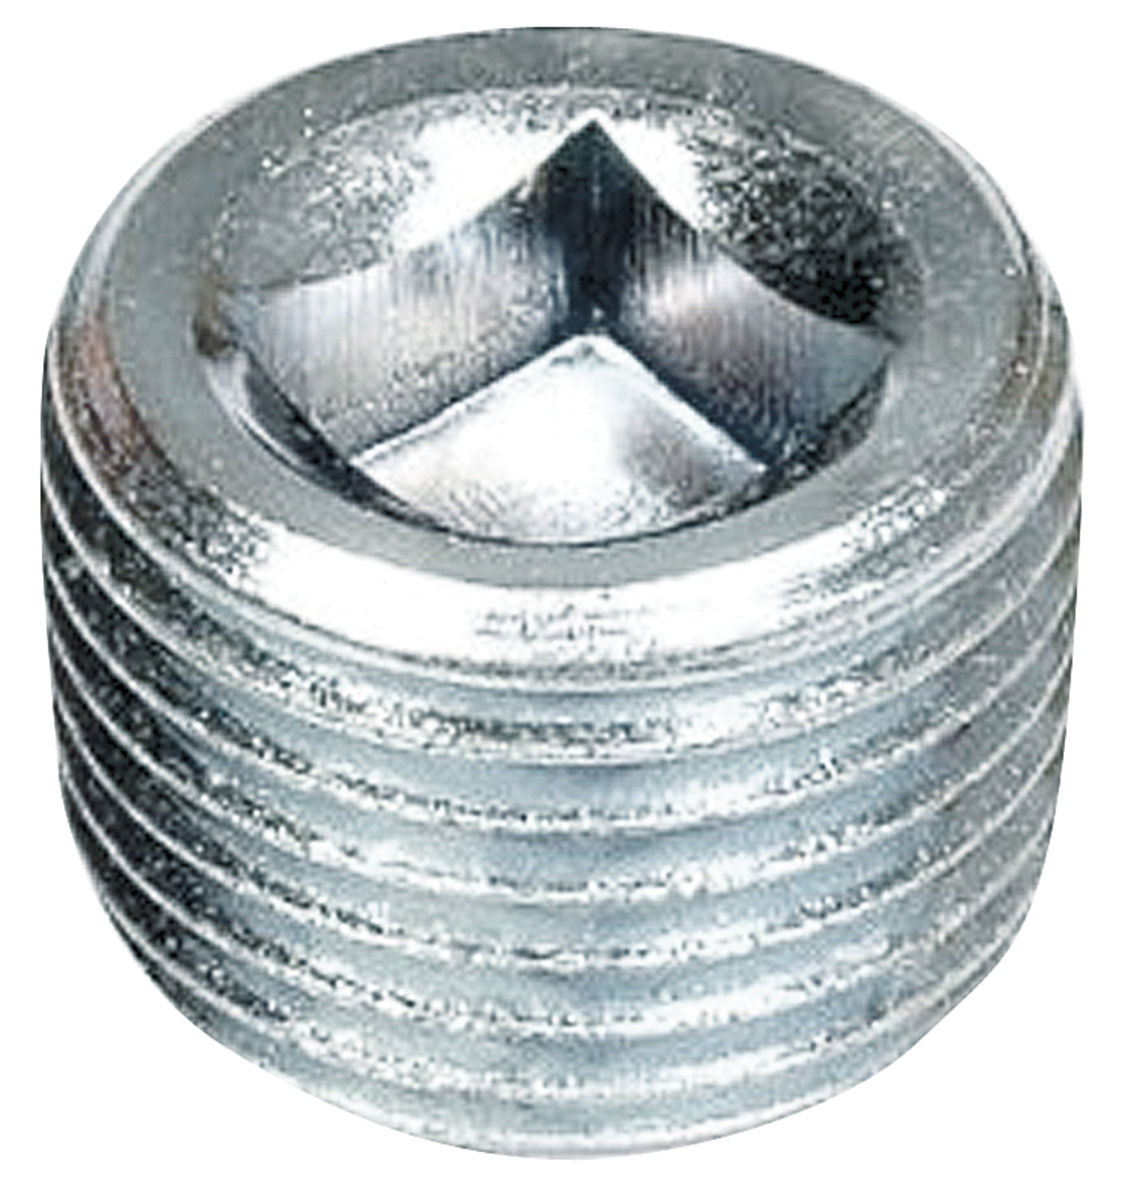 Photo of Differential Drain Plug